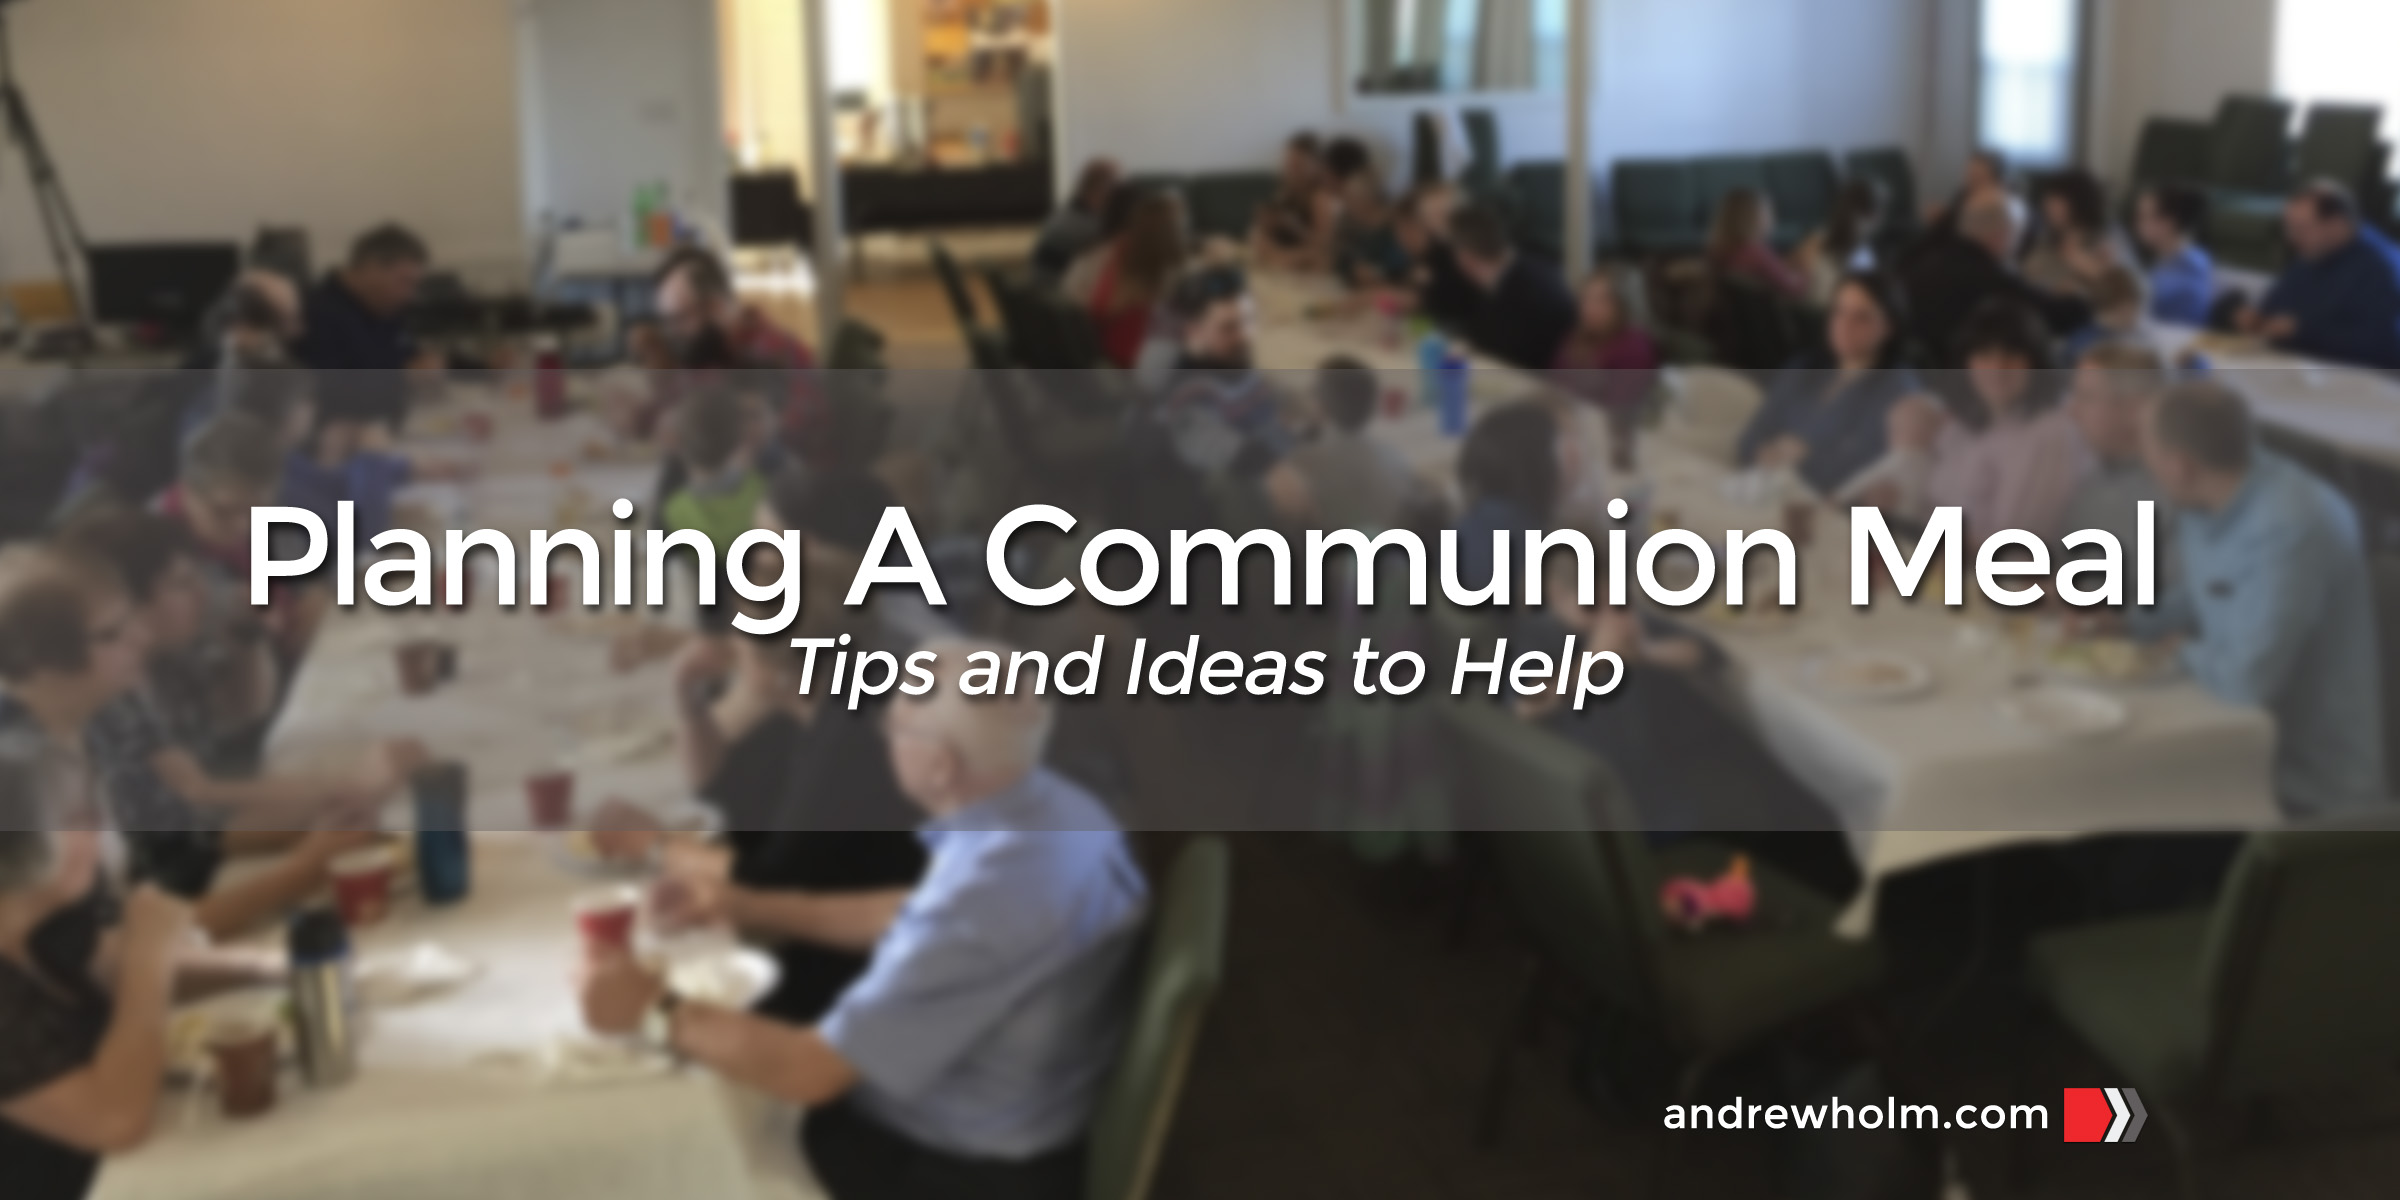 Planning A Communion Meal